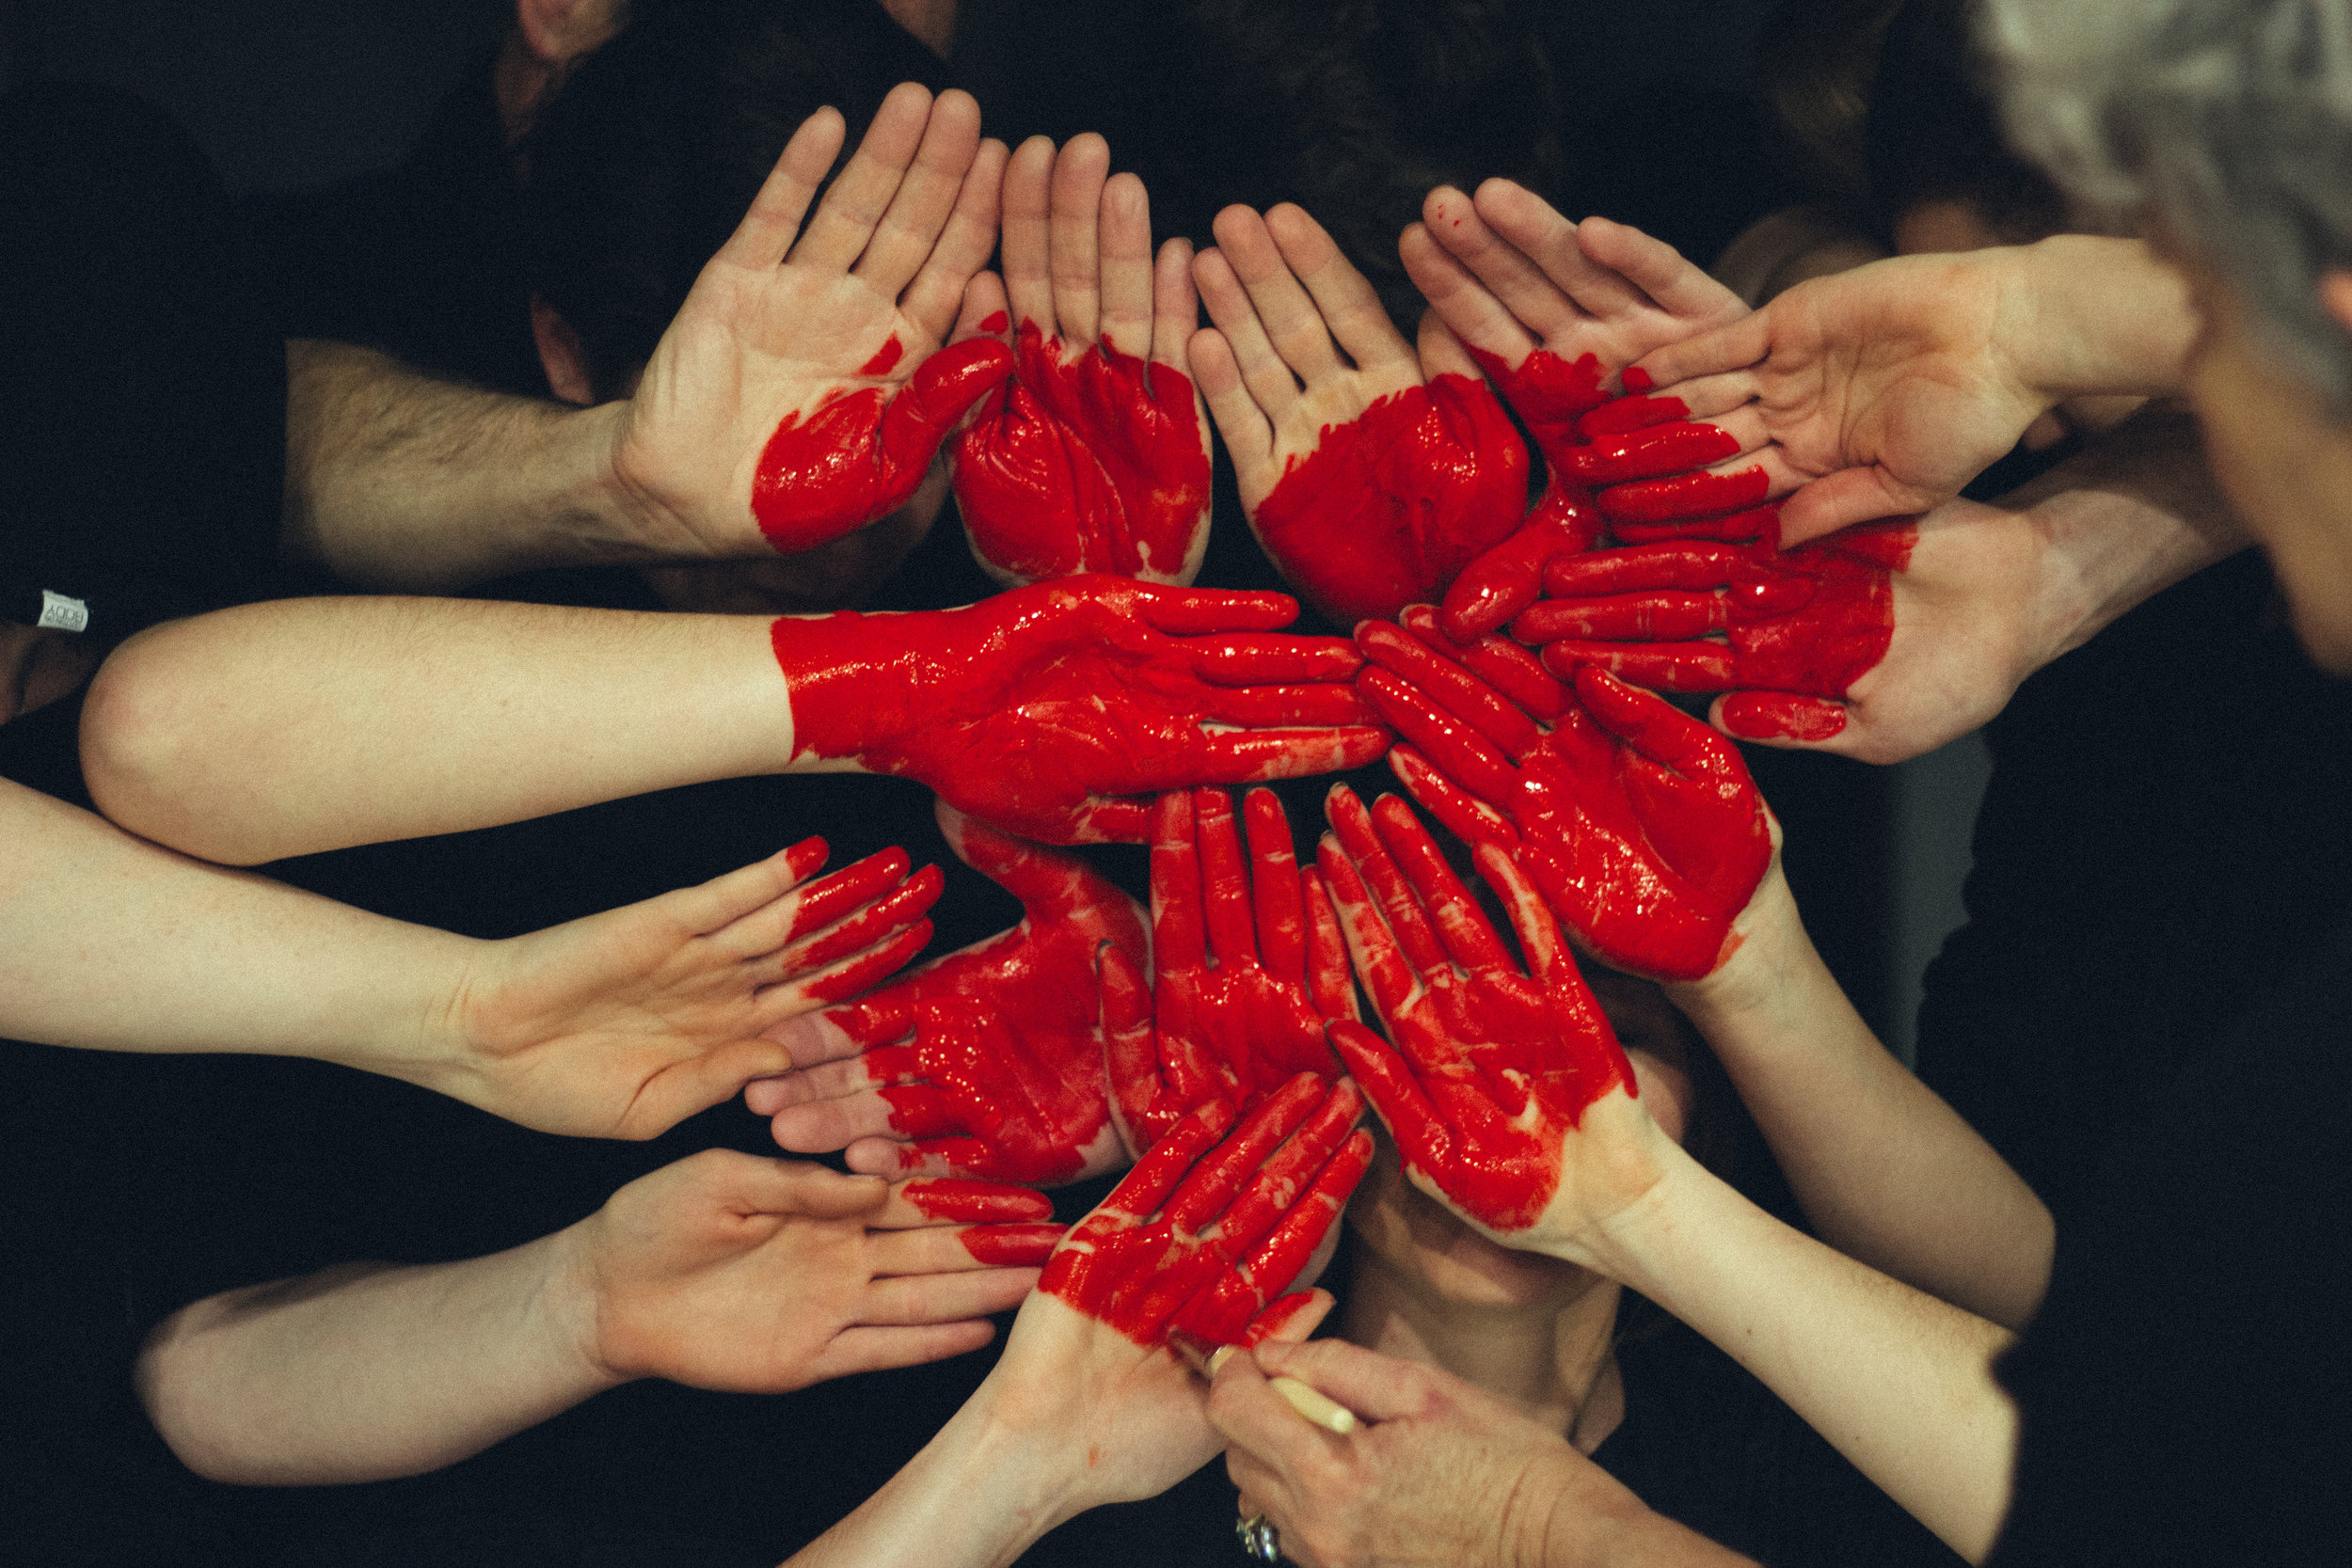 """""""RELATIONSHIPS MATTER: THE CURRENCY FOR SYSTEMIC CHANGE WAS TRUST, AND TRUST COMES THROUGH FORMING HEALTHY WORKING RELATIONSHIPS.  PEOPLE, NOT PROGRAMS, CHANGE PEOPLE""""  - Dr. Bruce Perry"""